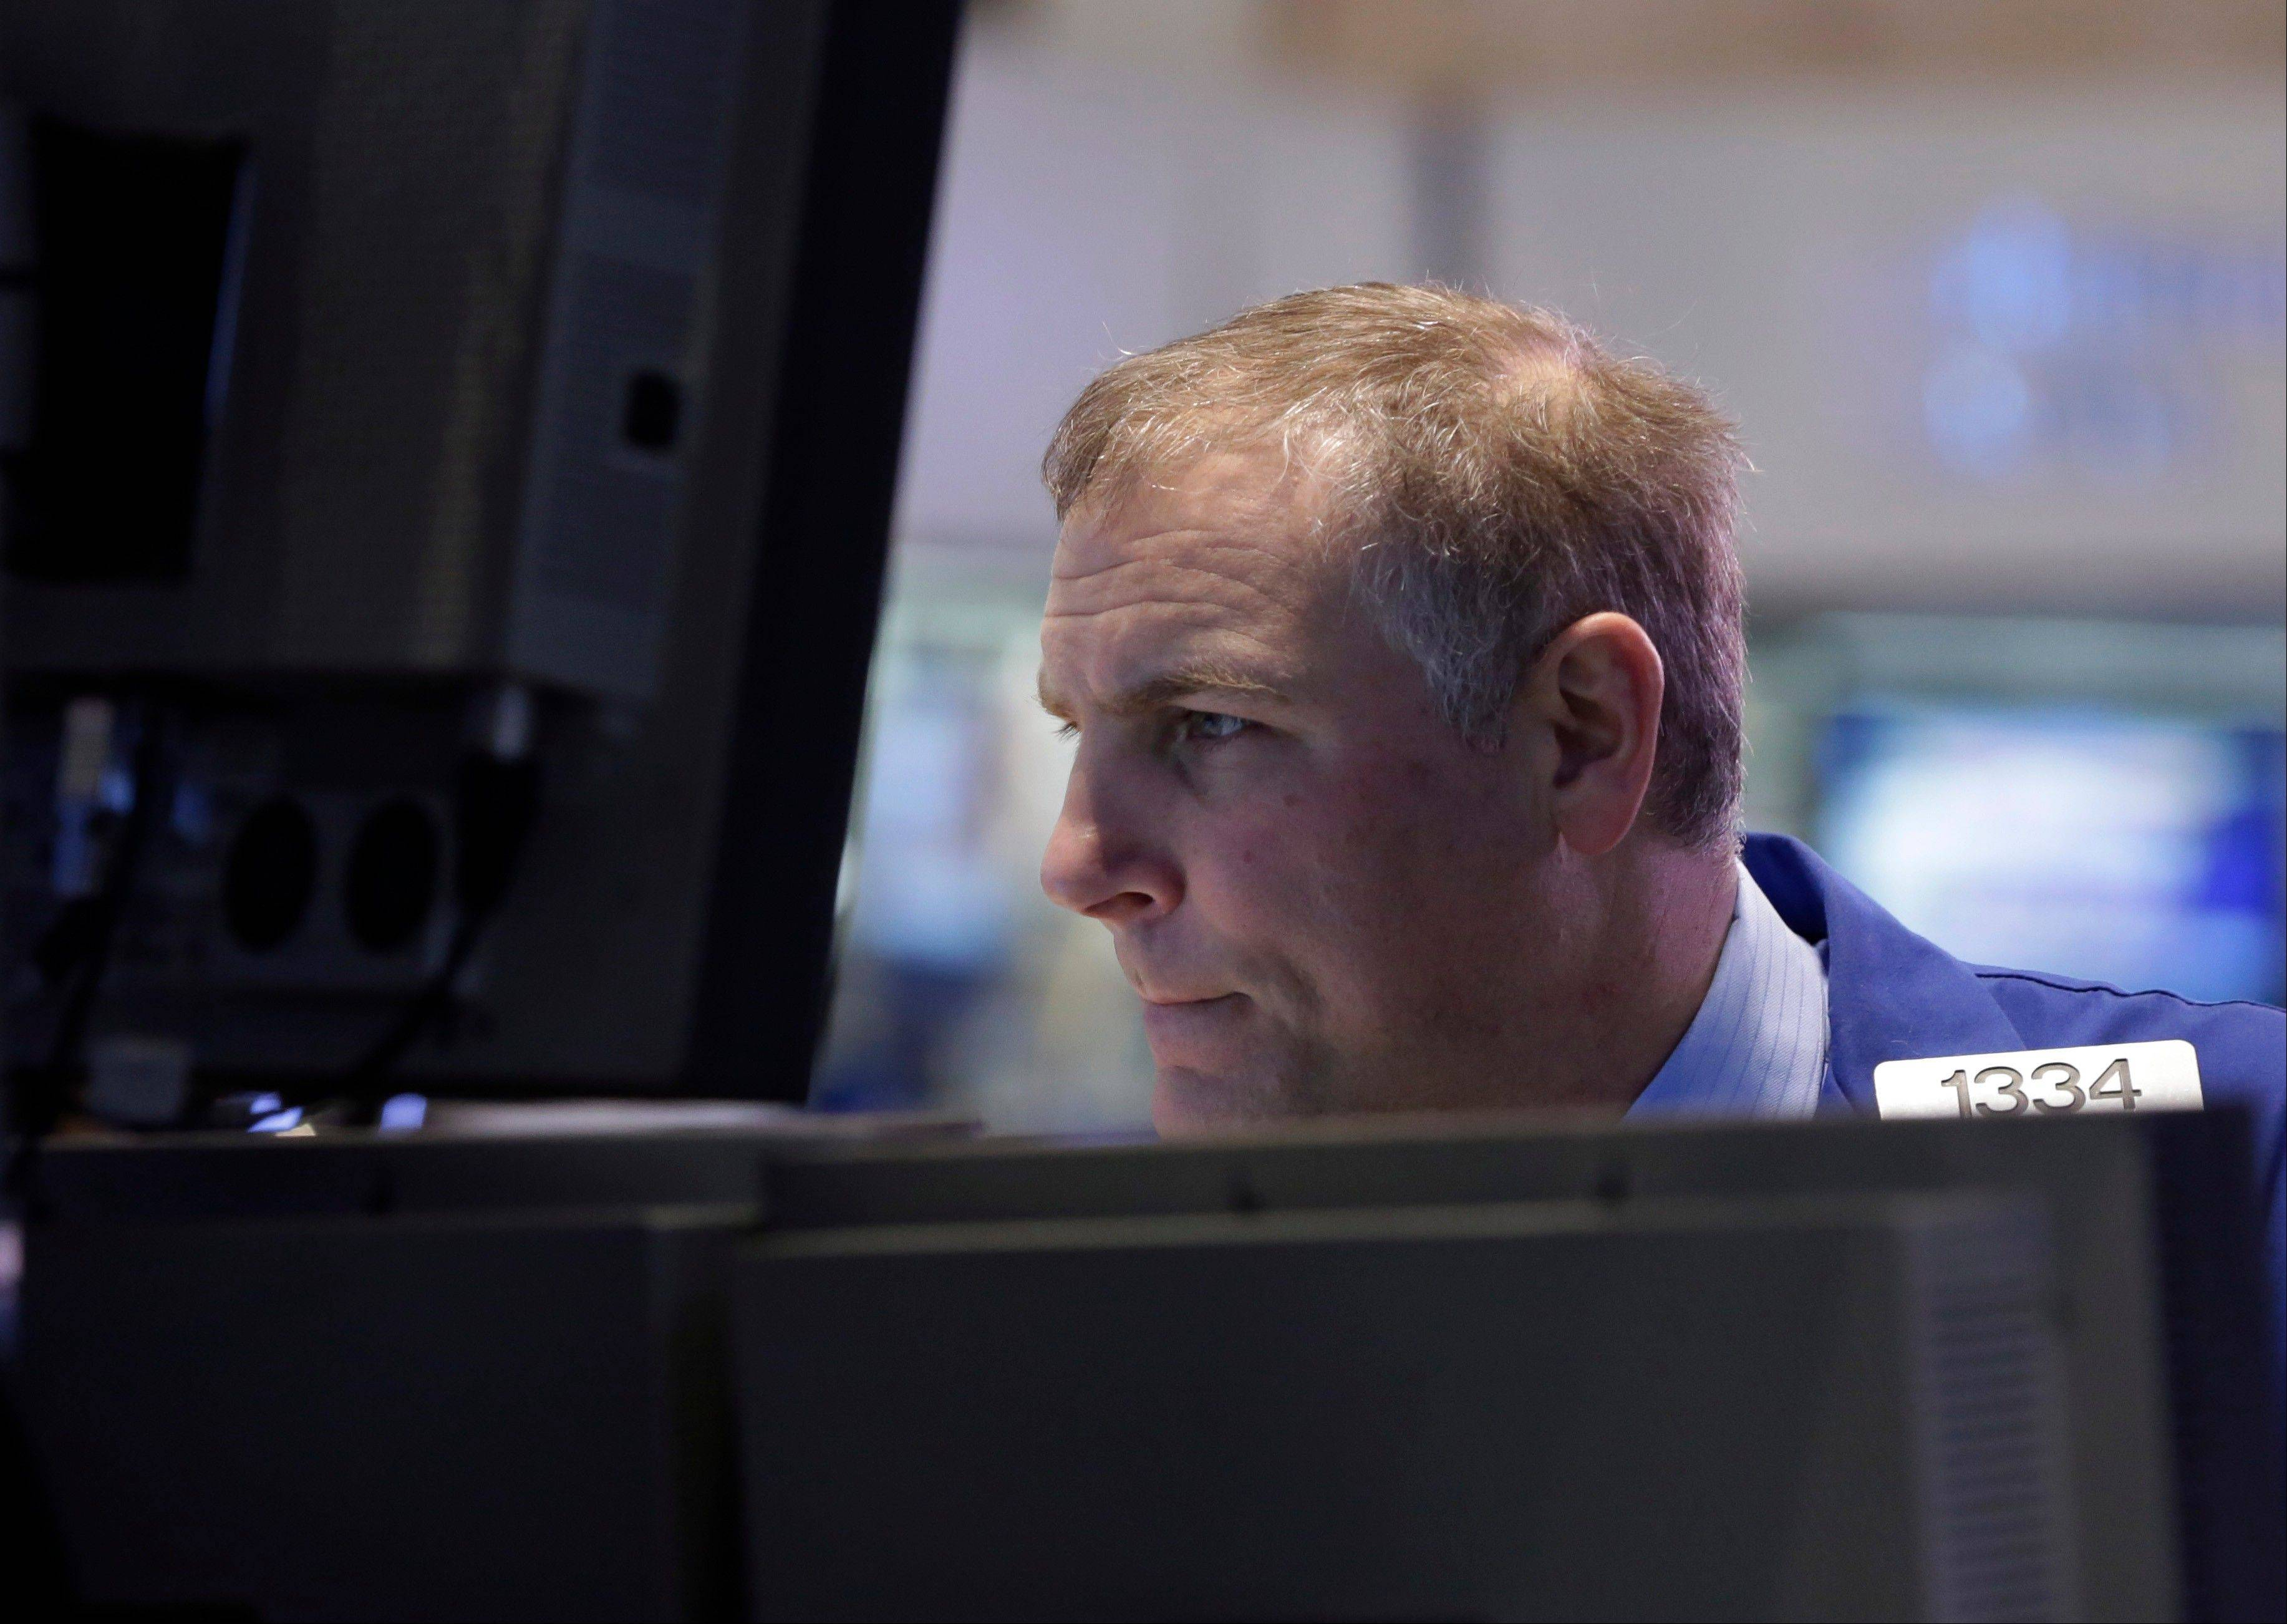 ASSOCIATED PRESSU.S. stocks fell, dragging the Standard & Poor's 500 Index down from a record, as financial and energy shares tumbled after oil plunged and worse-than-estimated data spurred concern over economic growth.